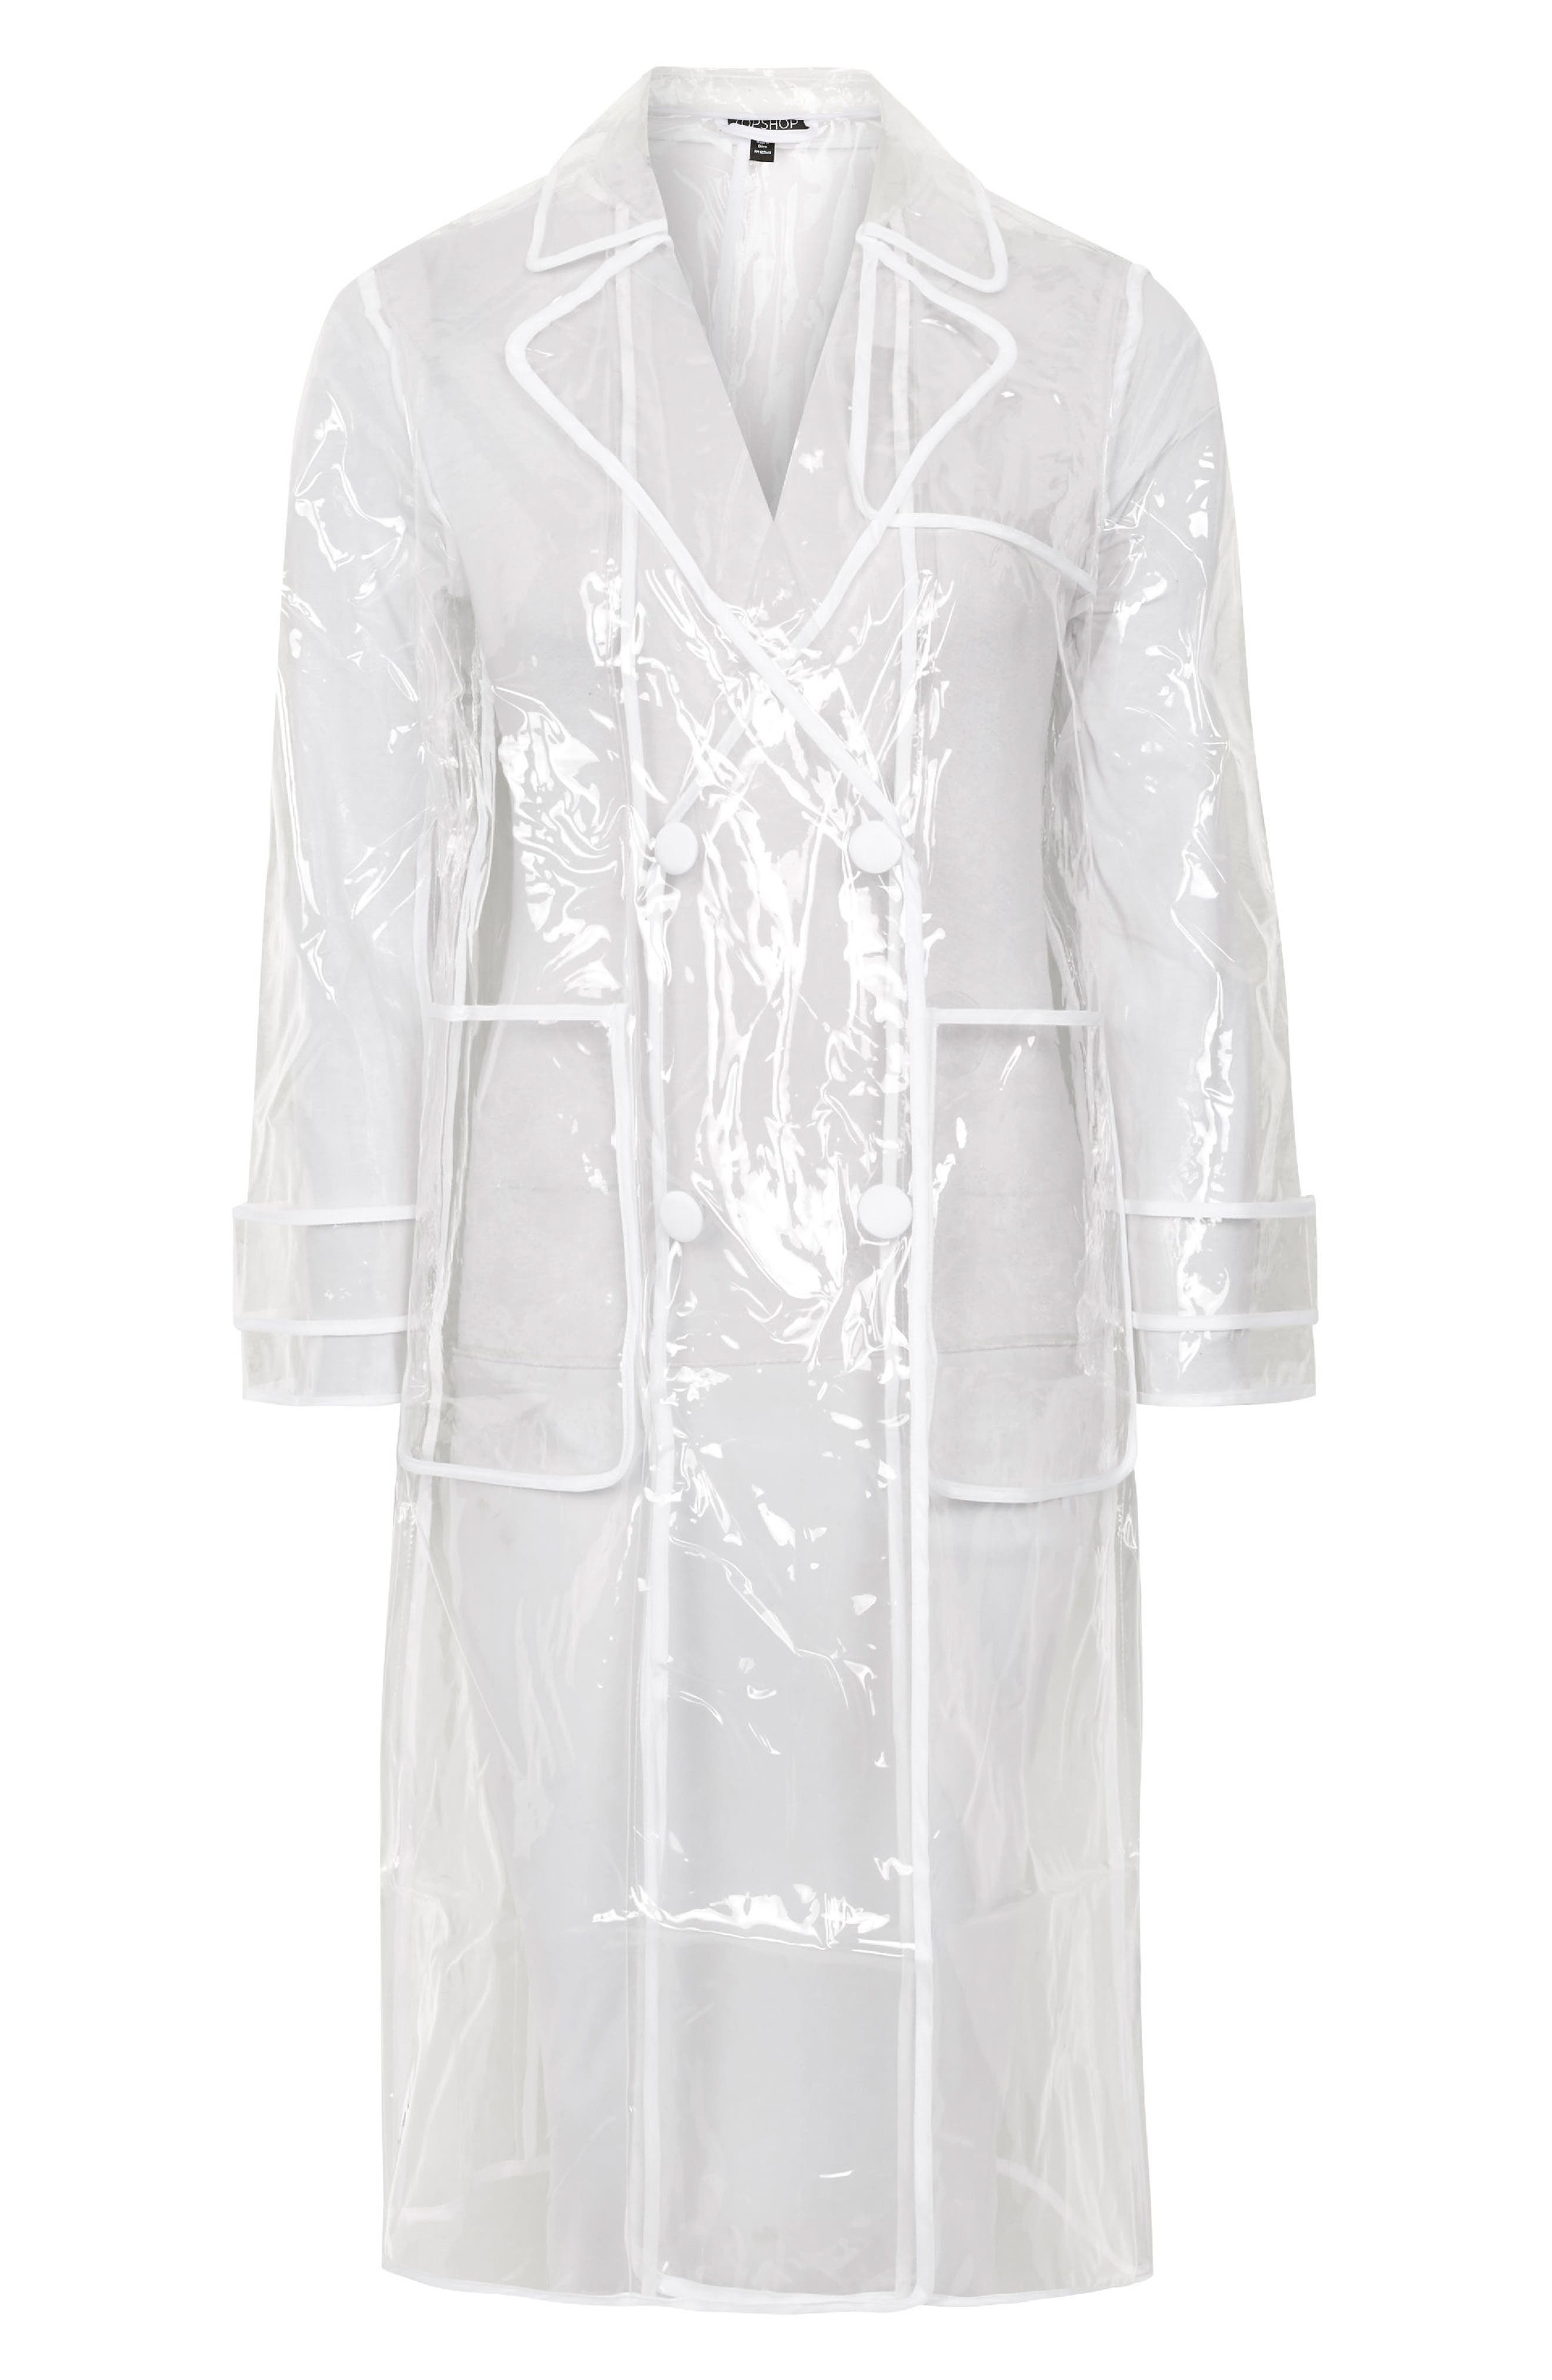 Clear Vinyl Trench Coat,                             Alternate thumbnail 4, color,                             Clear